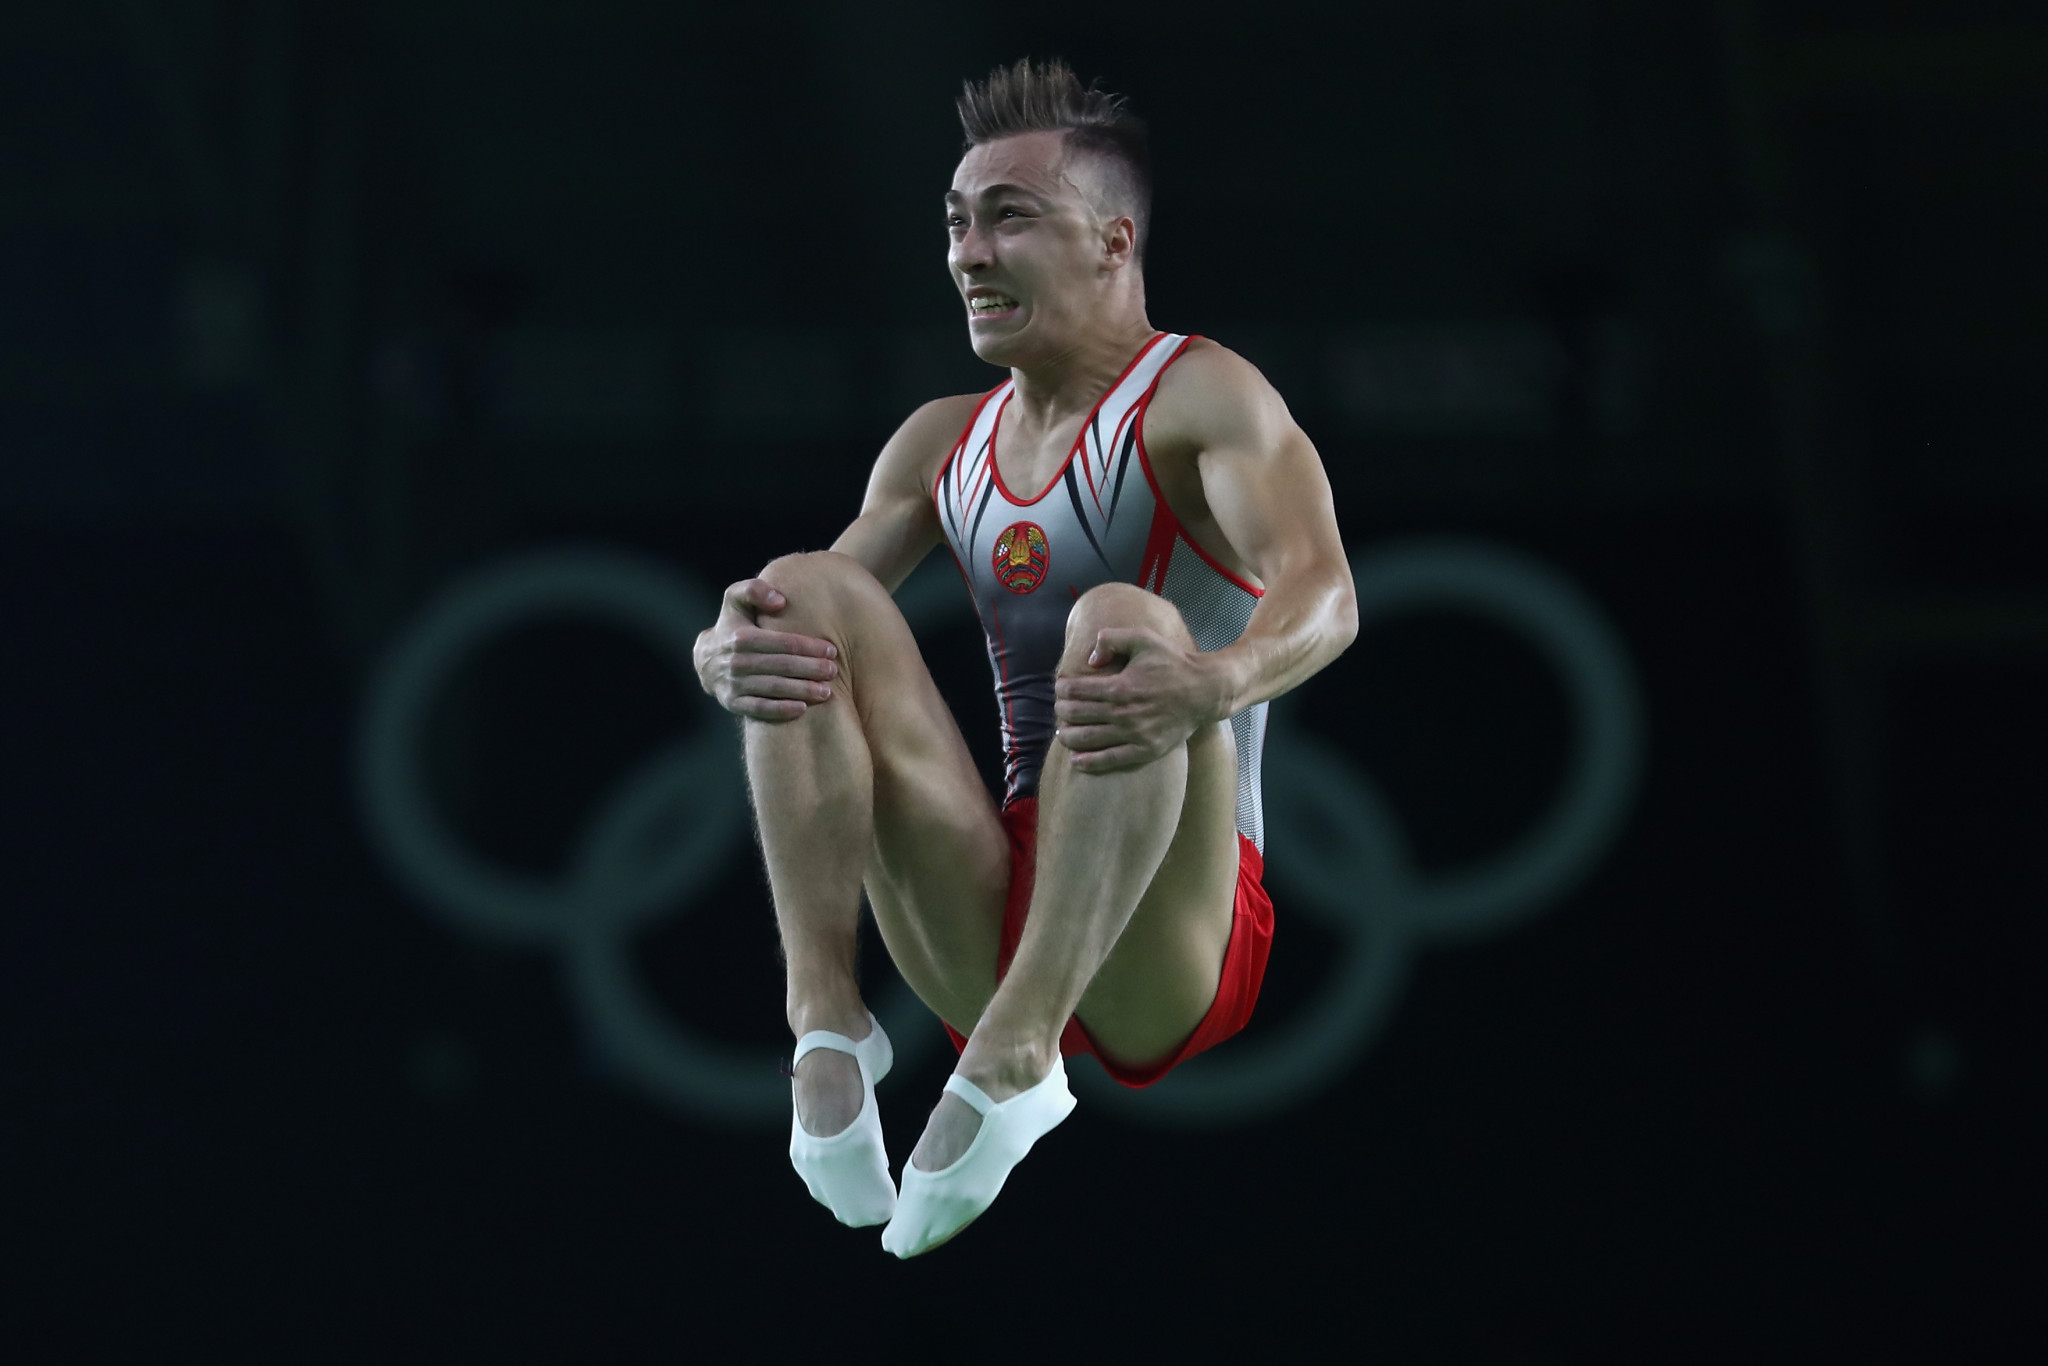 Uladzislau Hancharou is also the reigning Olympic champion ©Getty Images